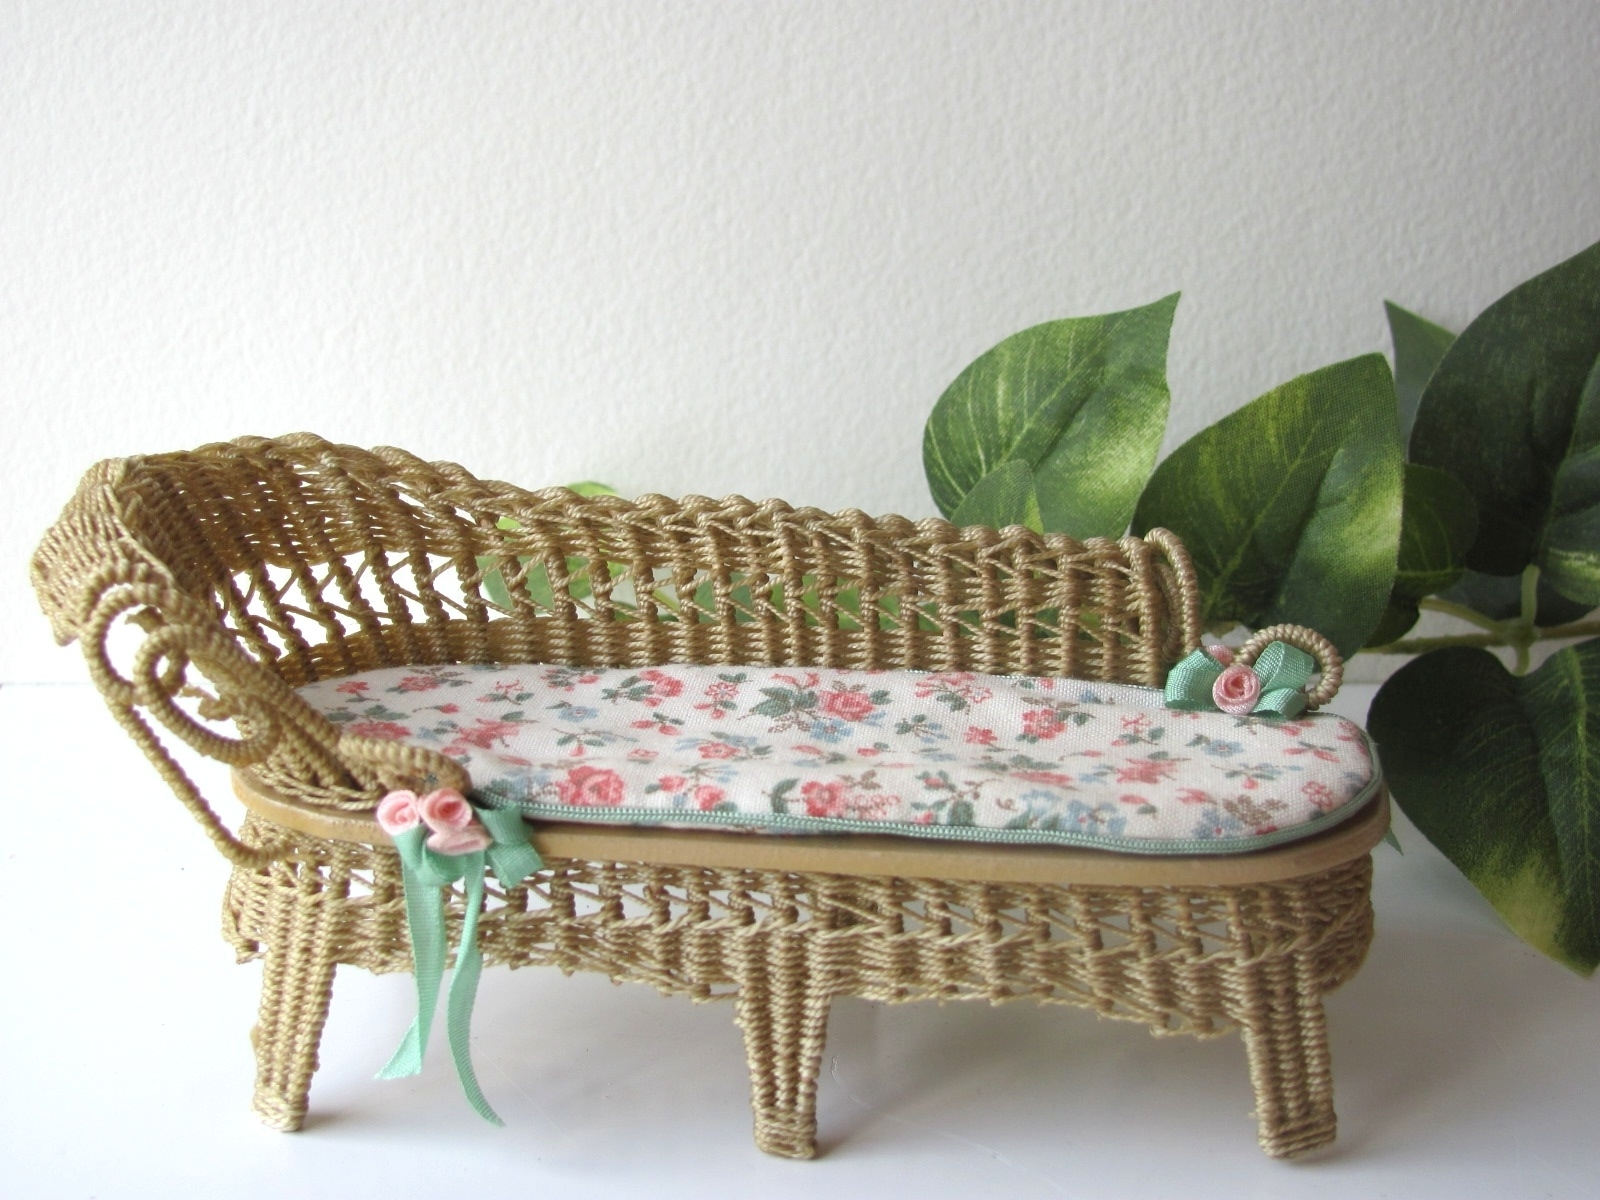 Recent Wicker Chaise Lounge Chairs Throughout Country Cottage Chic Wicker Chaise Lounge 1/12 Miniature Dollhouse (View 9 of 15)